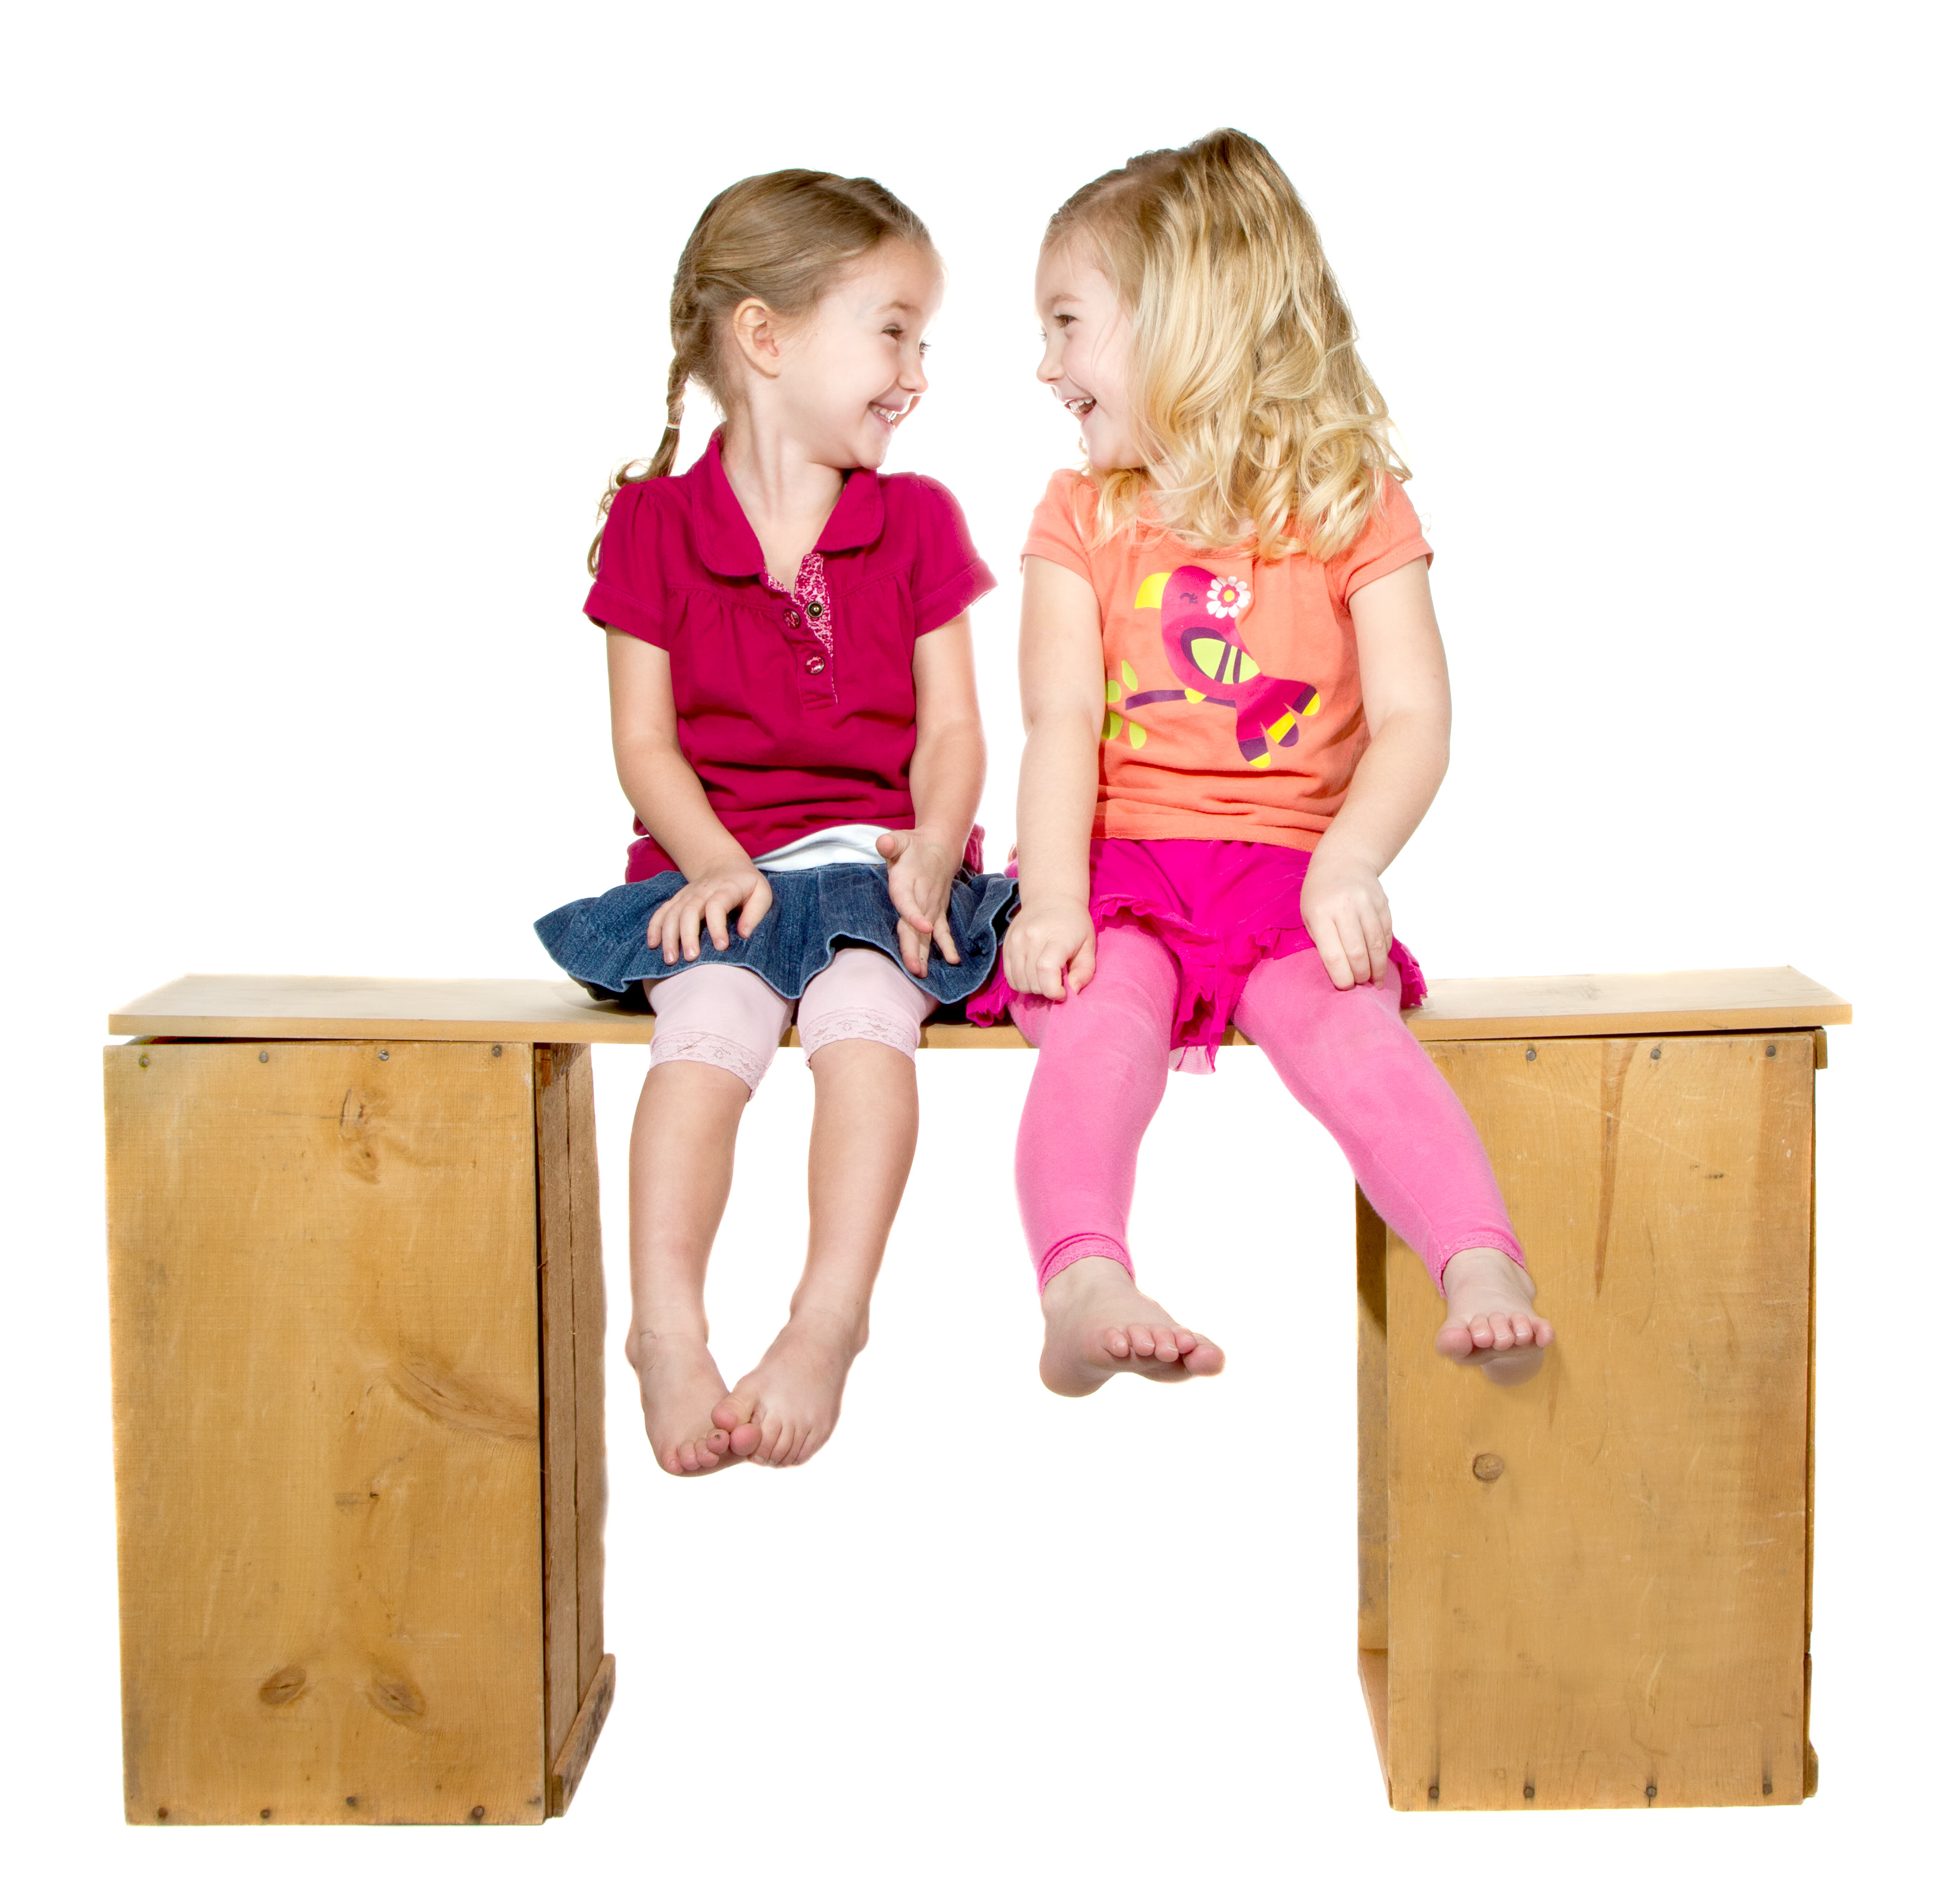 35 Phrases For Encouraging Cooperation Between Child and Parent